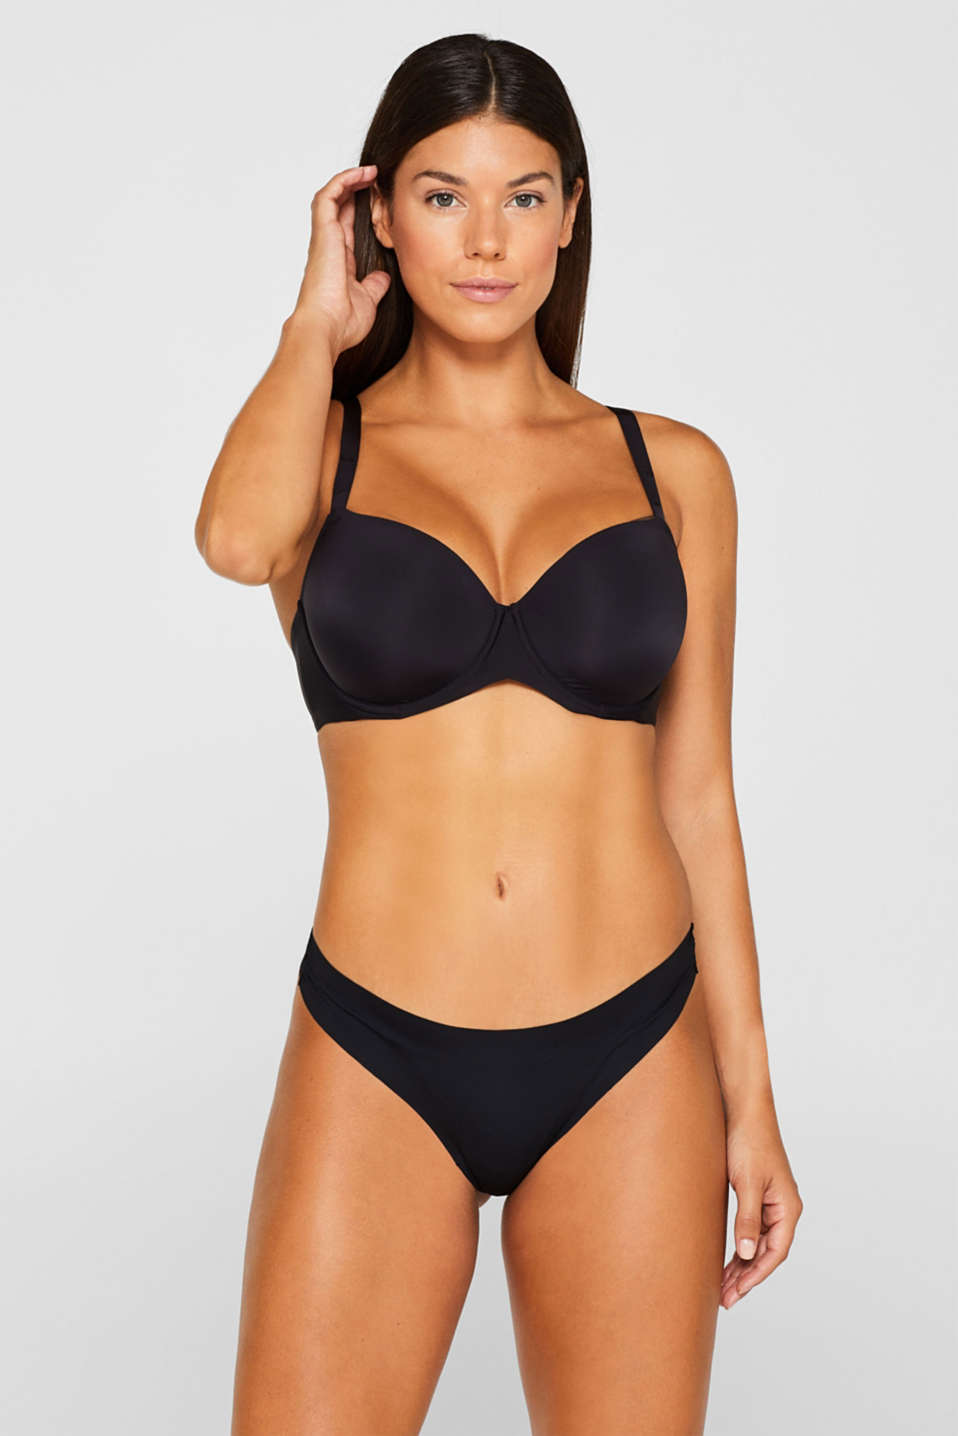 Padded, underwire bra for large cup sizes, BLACK, detail image number 0